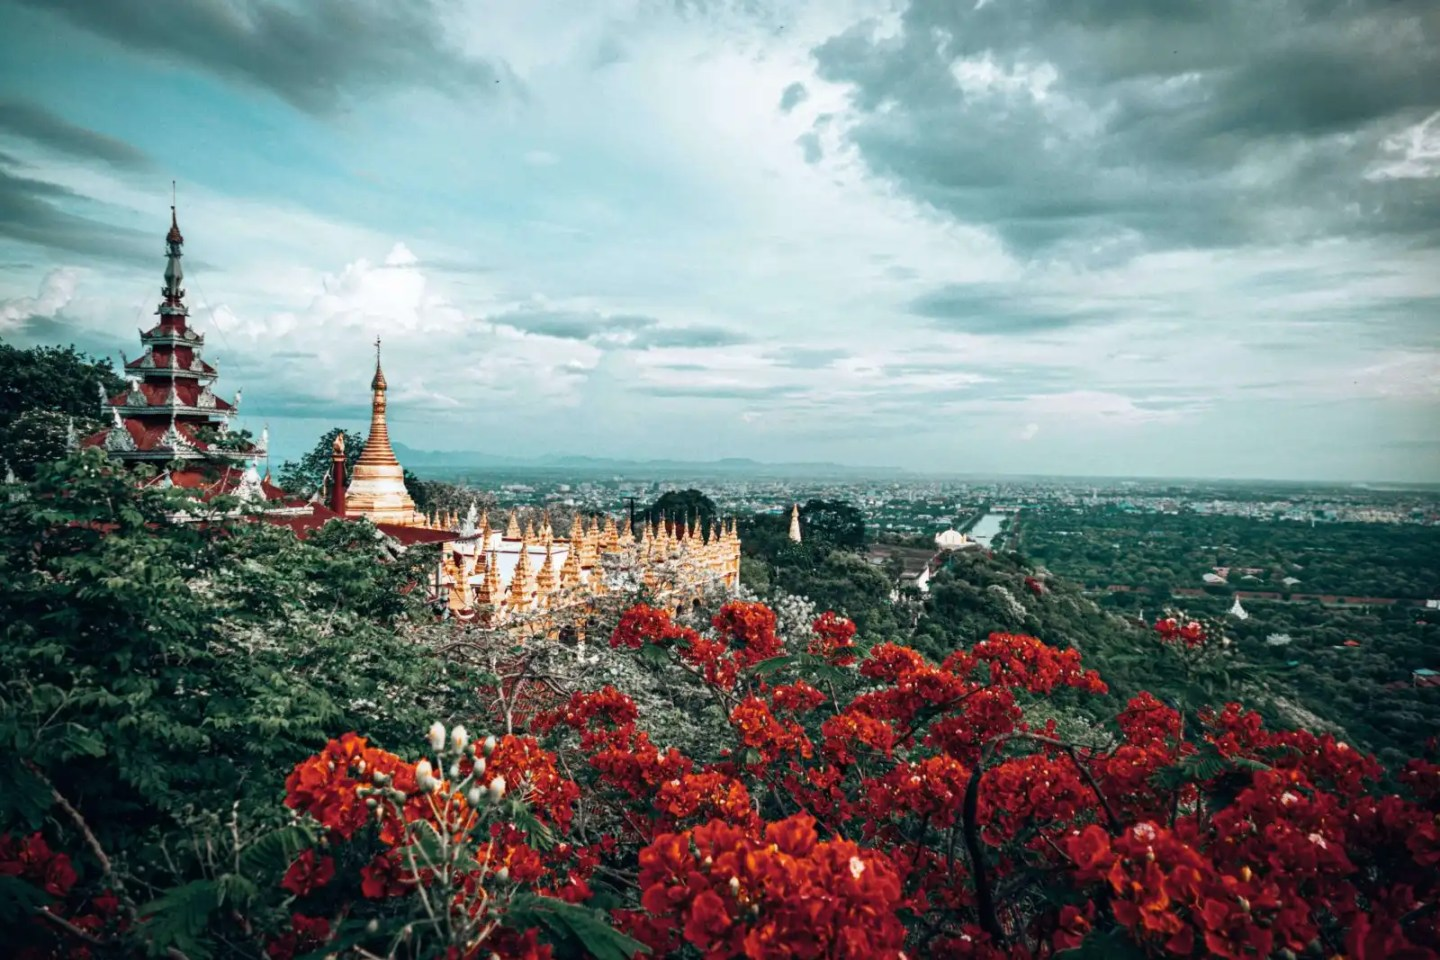 Picture of flowers and the view at Mandalay Hill in Mandalay, Myanmar